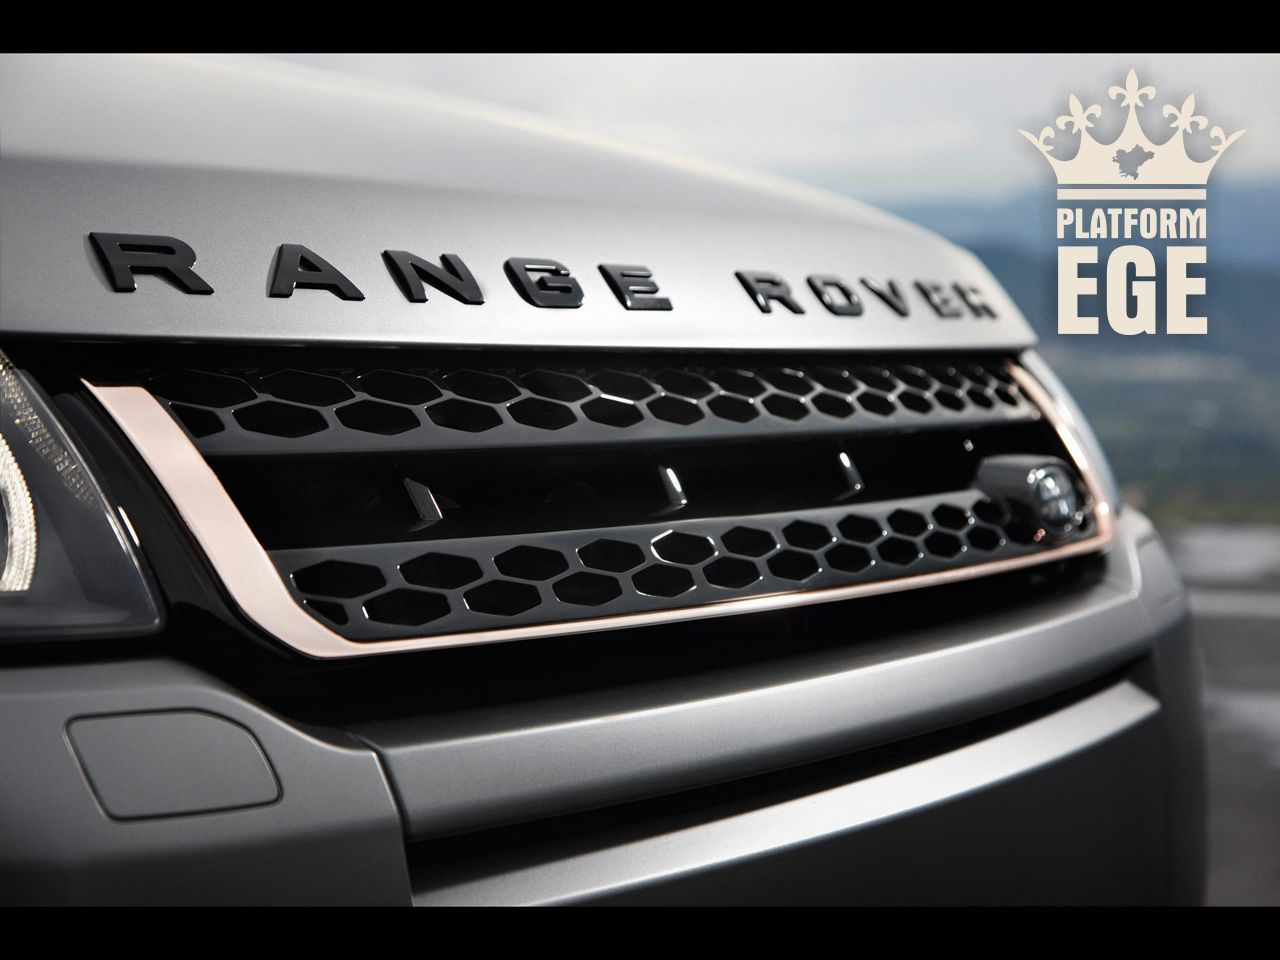 2012-Range-Rover-Evoque-Special-Edition-with-Victoria-Beckham-Front-Grille-1280x9600